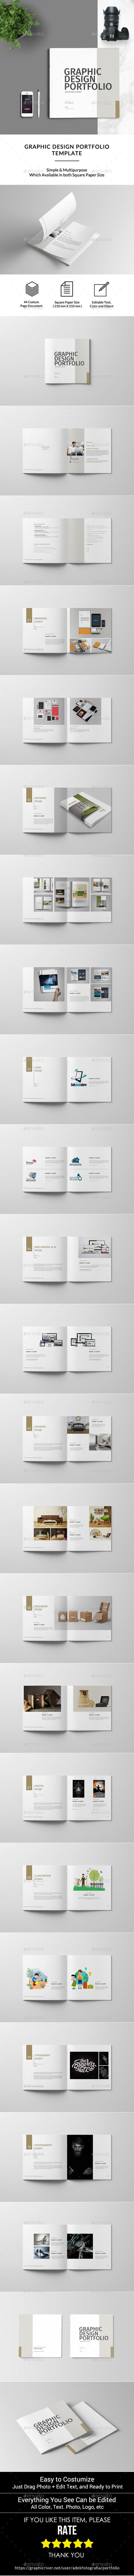 Graphic Design Portfolio Template — InDesign INDD #simple #minimalist • Download ➝ https://graphicriver.net/item/graphic-design-portfolio-template/19899858?ref=pxcr